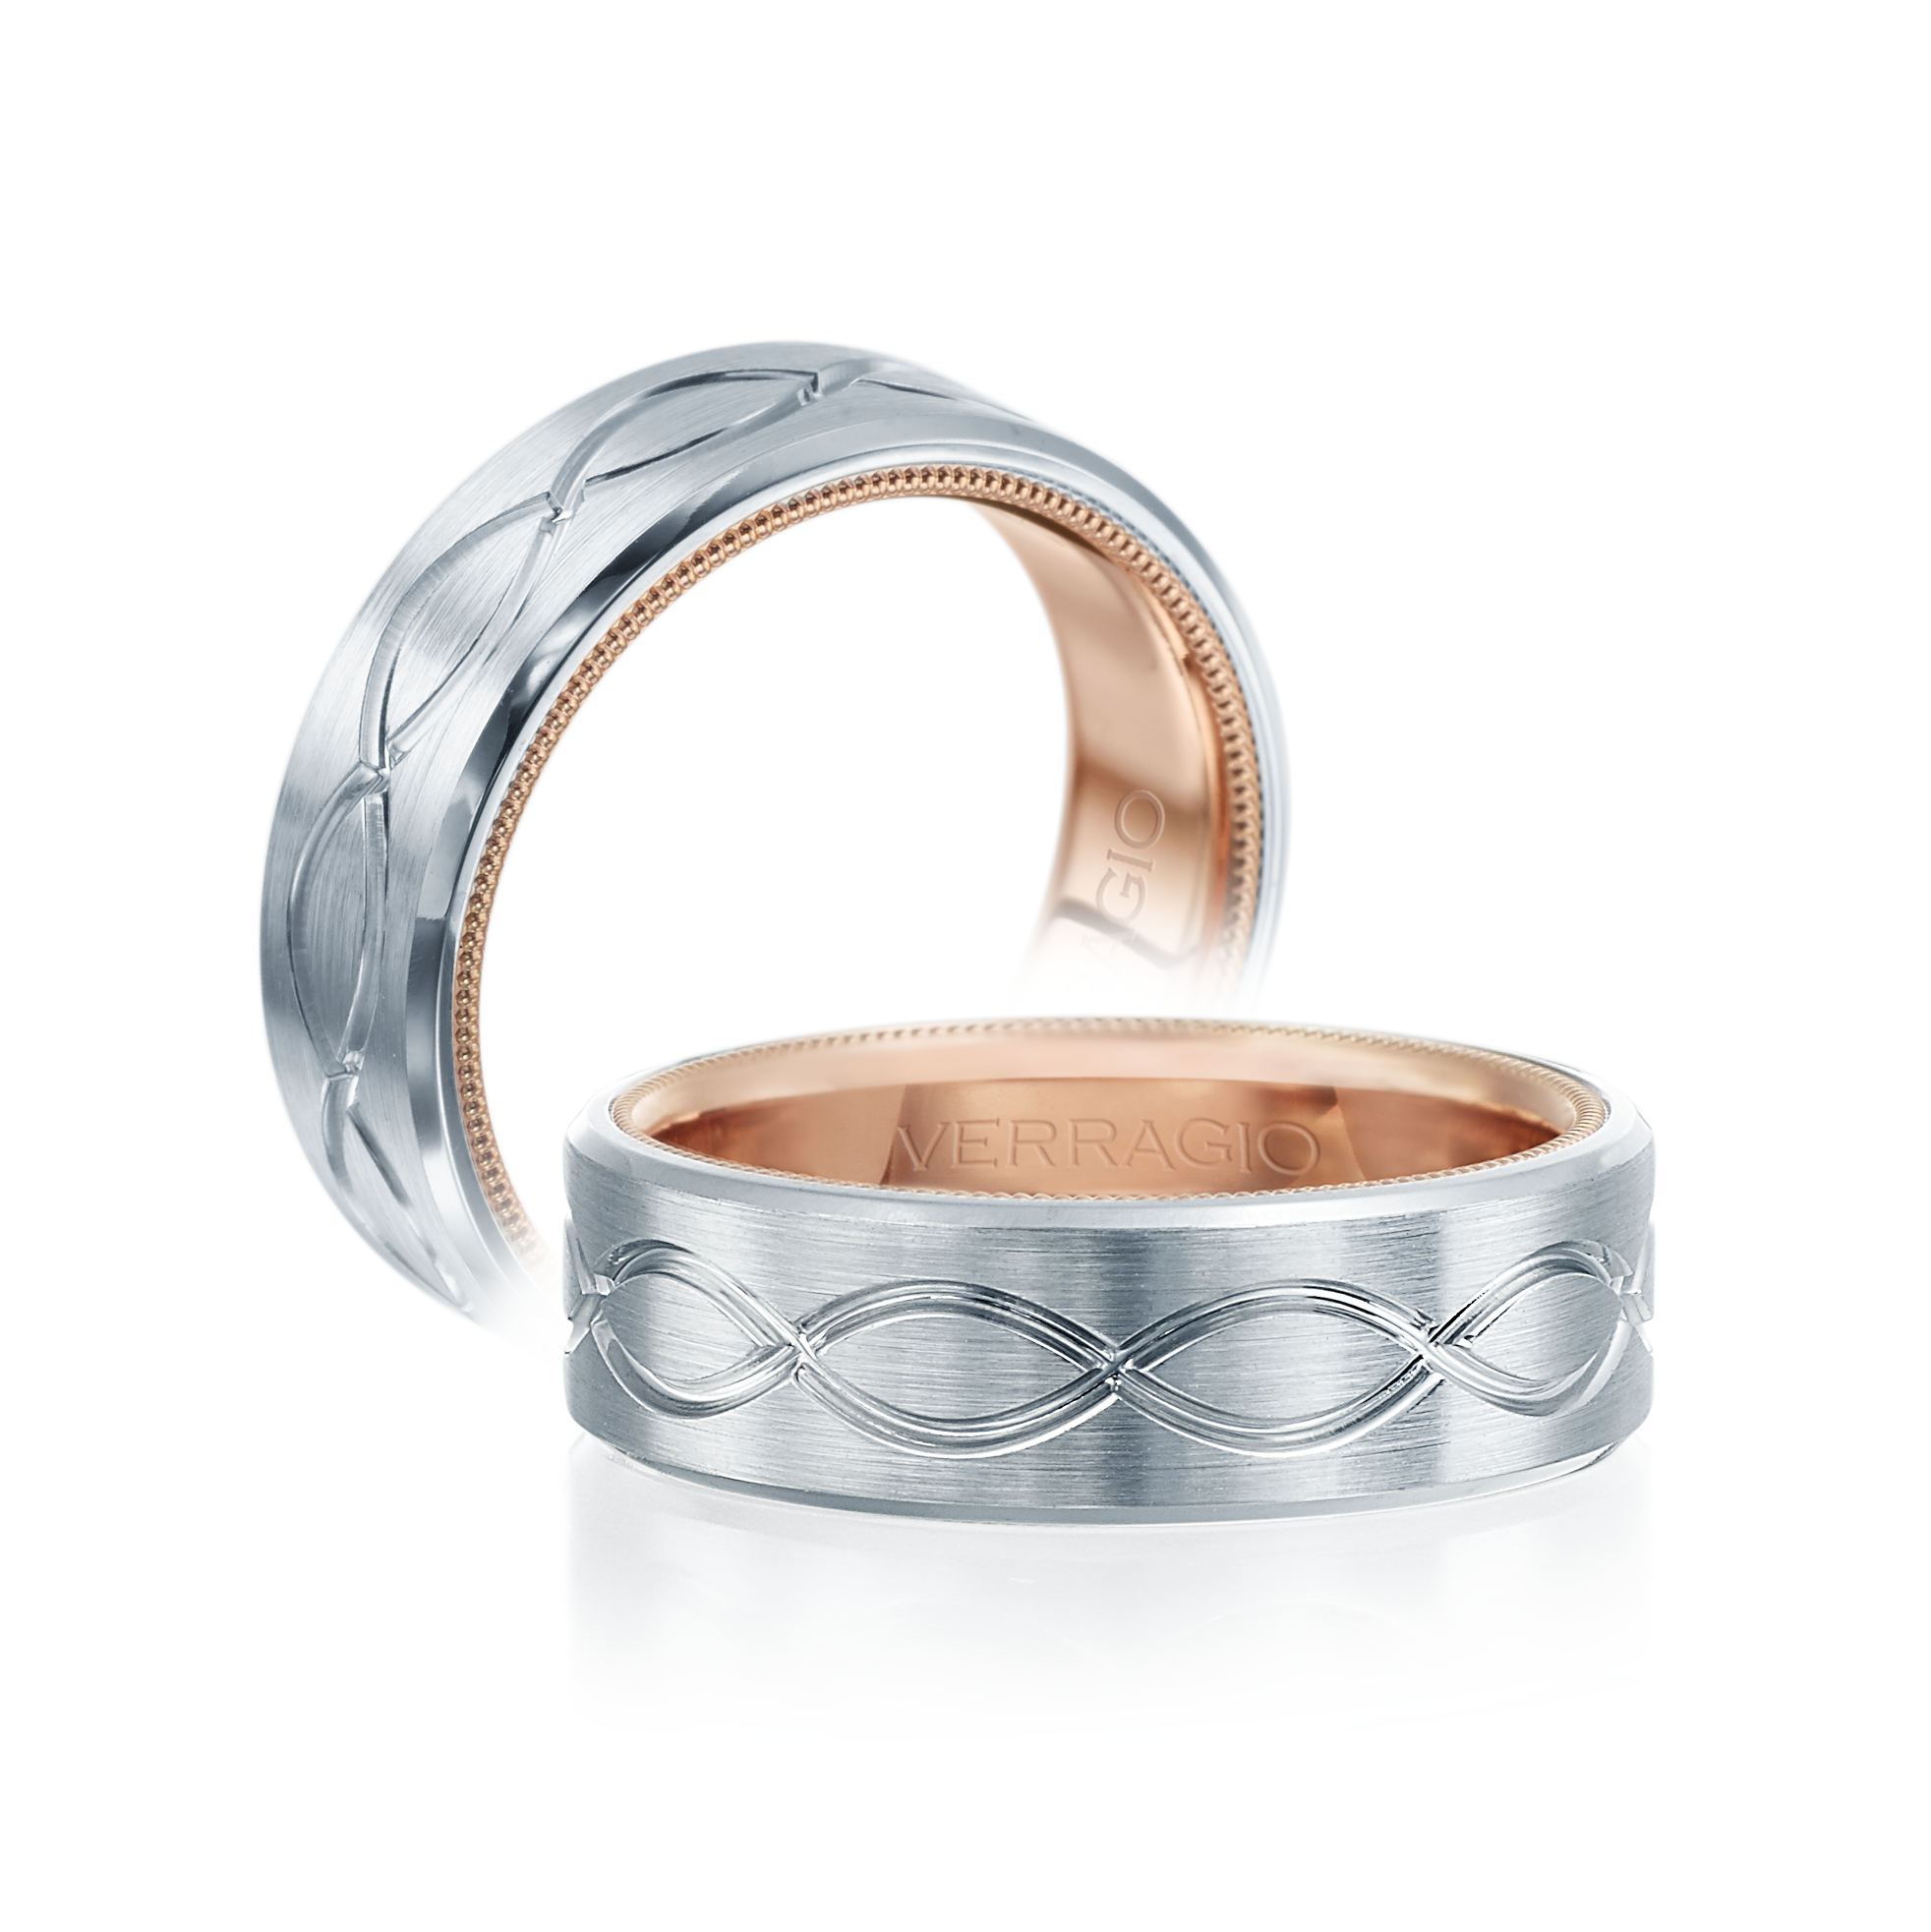 Wedding Bands and Wedding Rings: What\'s the Difference? | Verragio ...